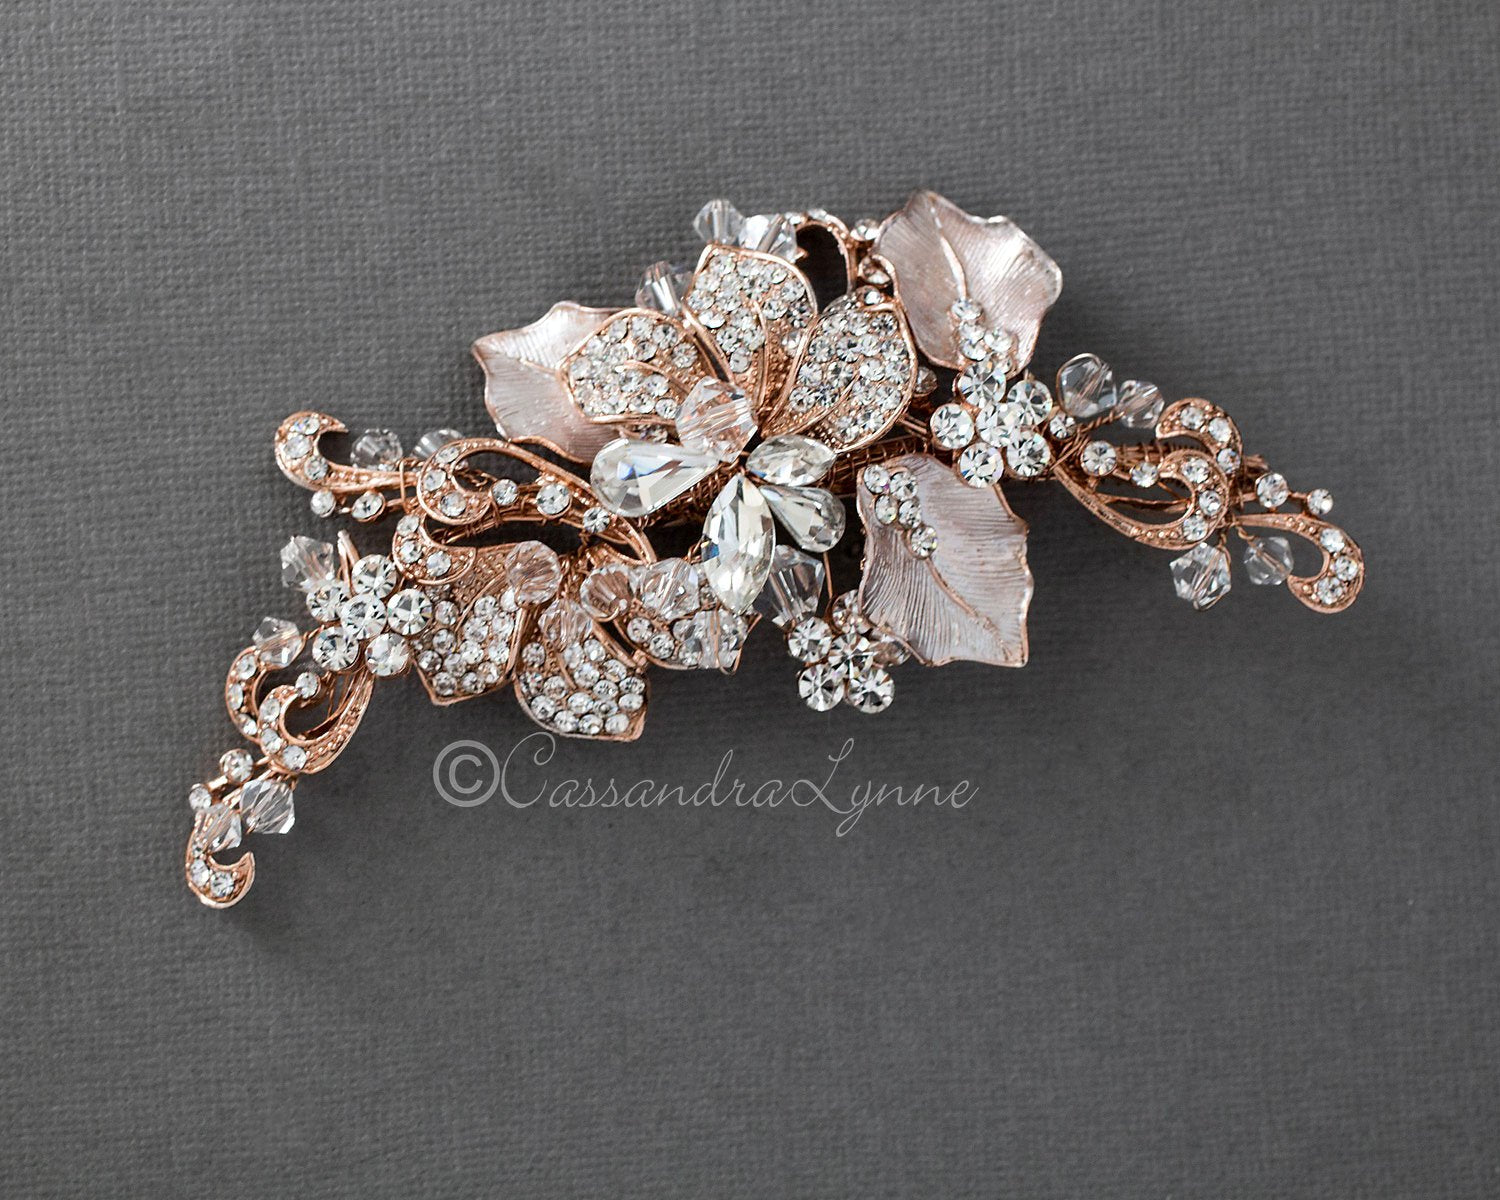 Bridal Headpiece of Frosted Rose Gold and Crystal Leaves